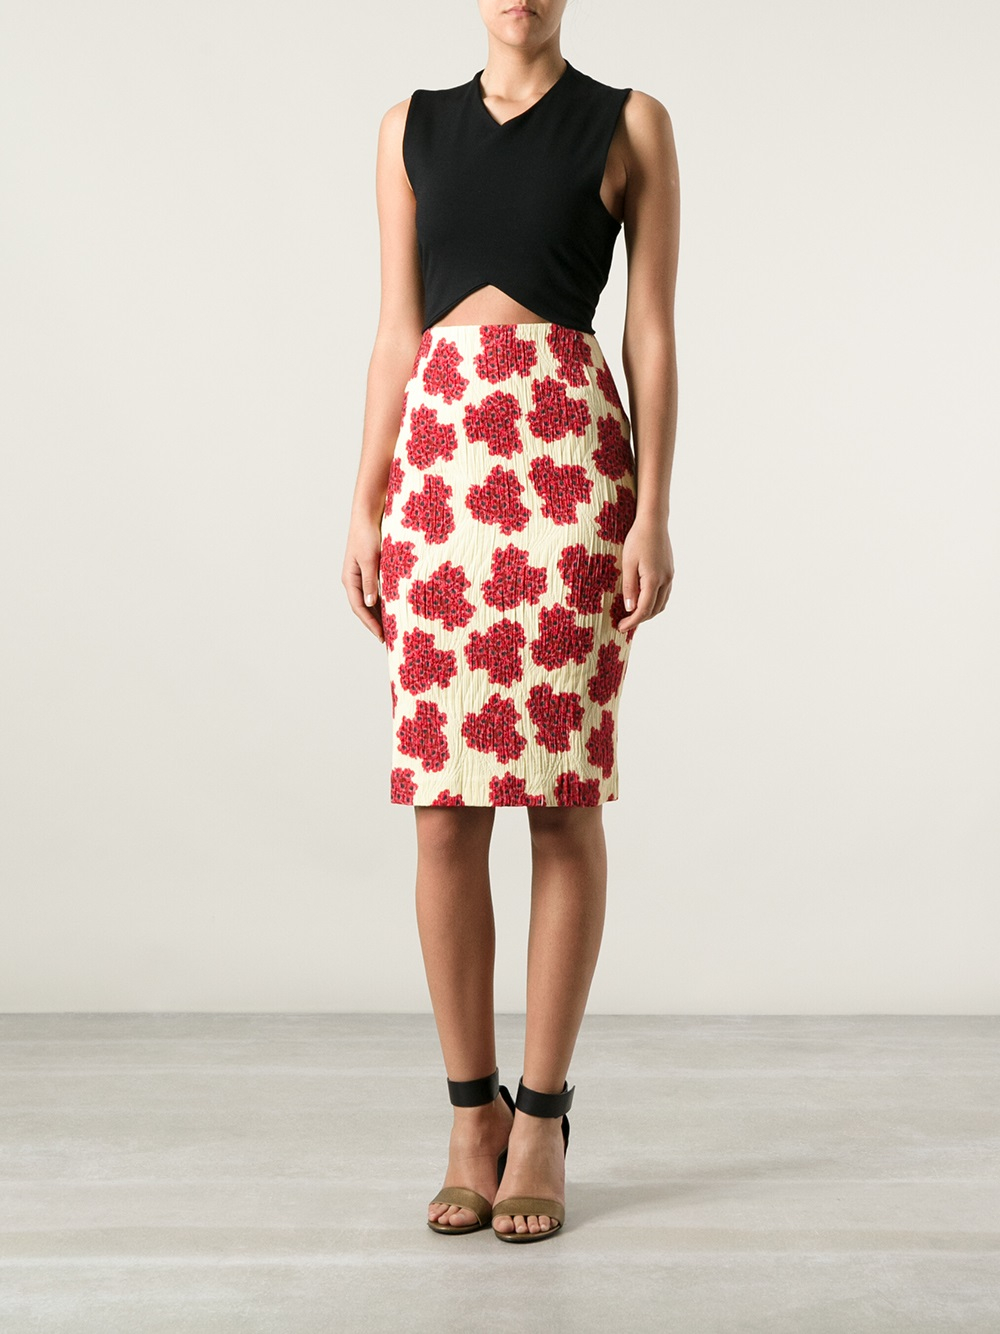 Andrea Incontri Floral Pencil Skirt In Red Lyst